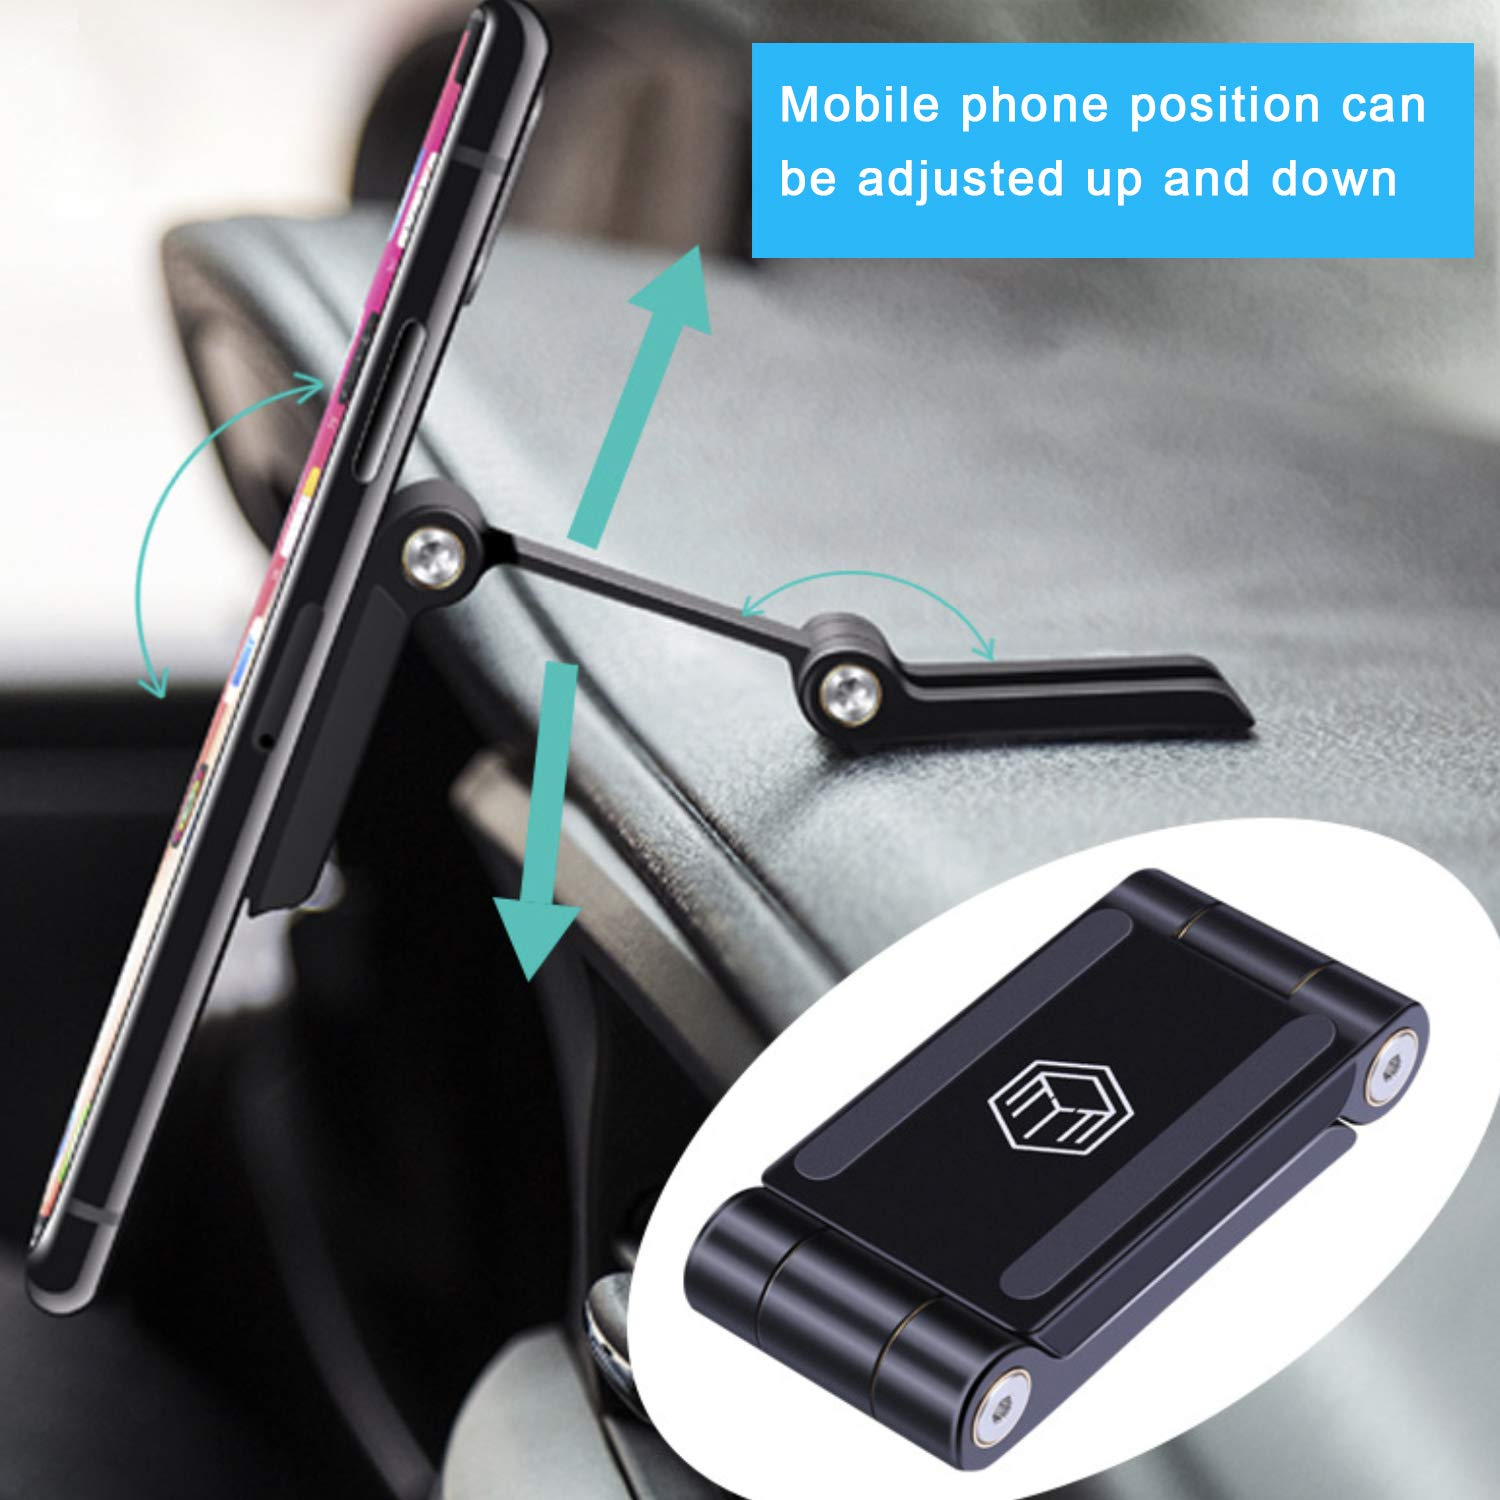 Sony Samsung Galaxy Motorola HTC ect LG Magnetic Phone Car Mount BlackBerry Qidoe Magnetic Car Phone Mount Holder Stick On Car with 3M Strong Adhesive Nice Car Kit for iPhone Nokia